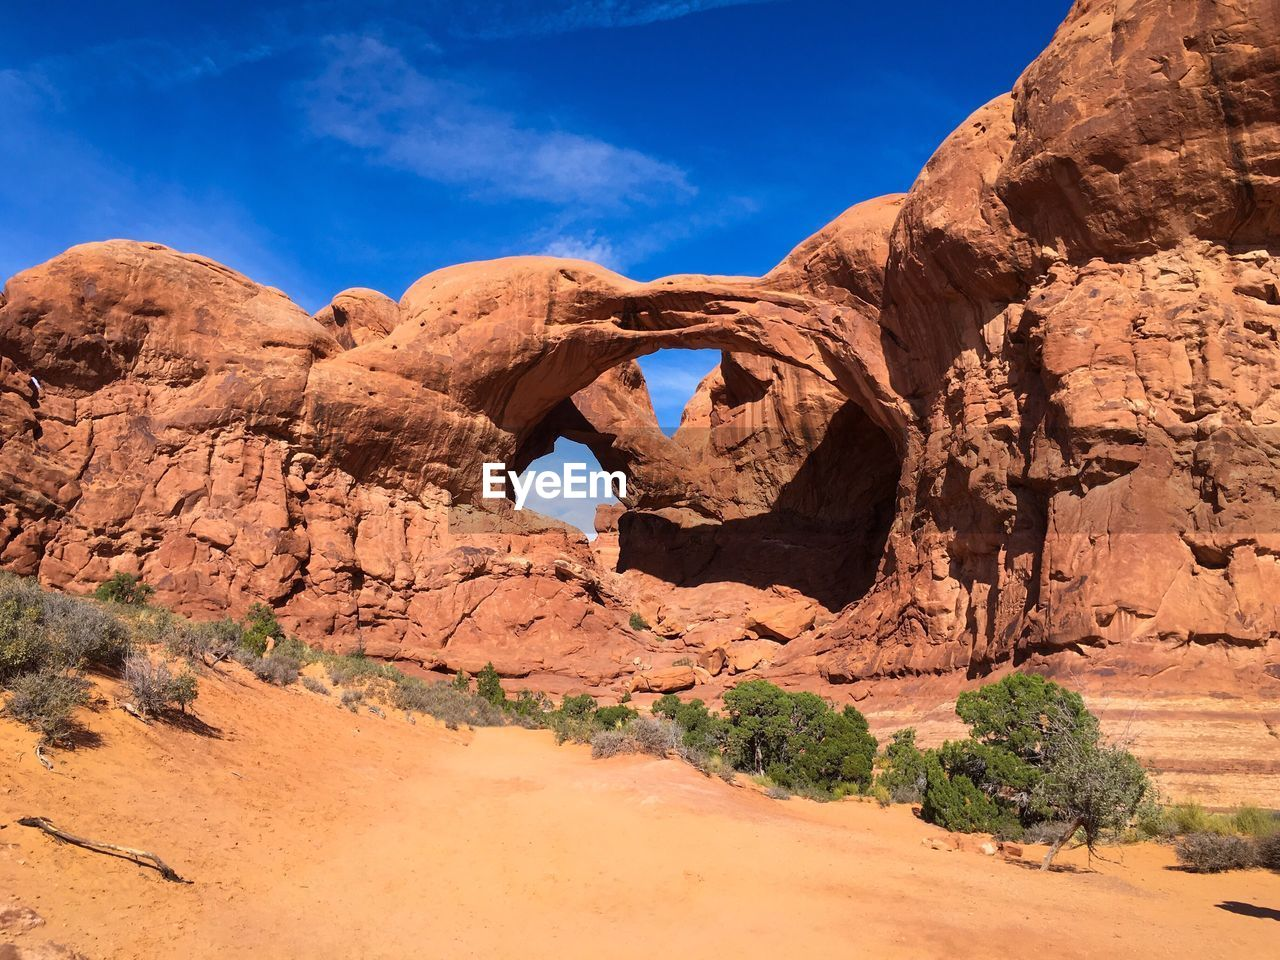 Scenic view of rock formations at arches national park against blue sky